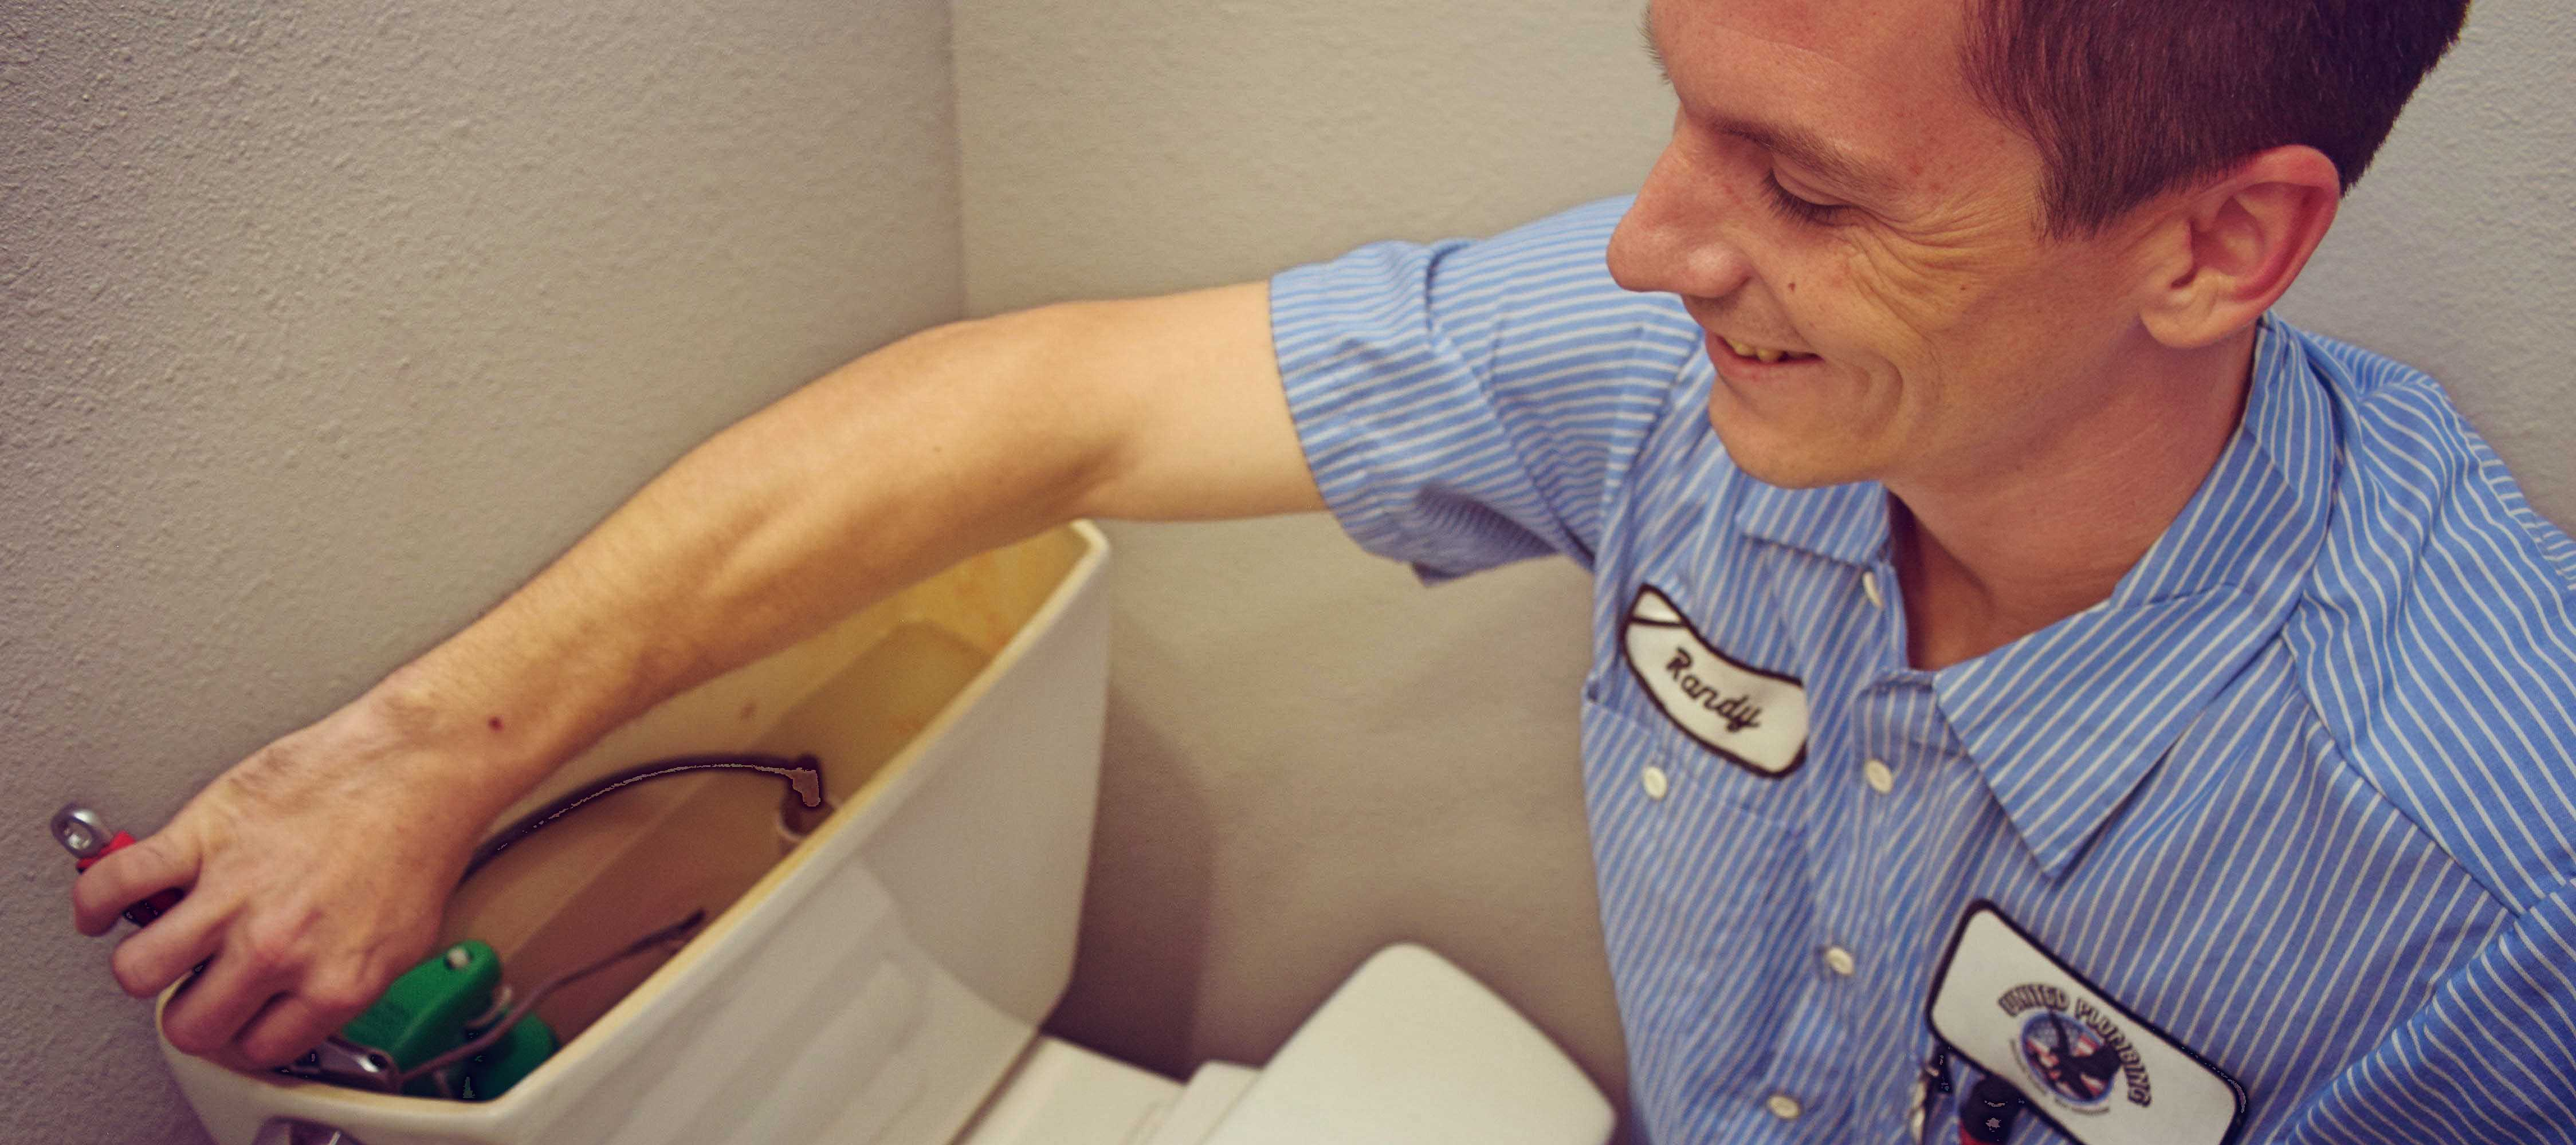 Toilet Repair in Springfield Missouri